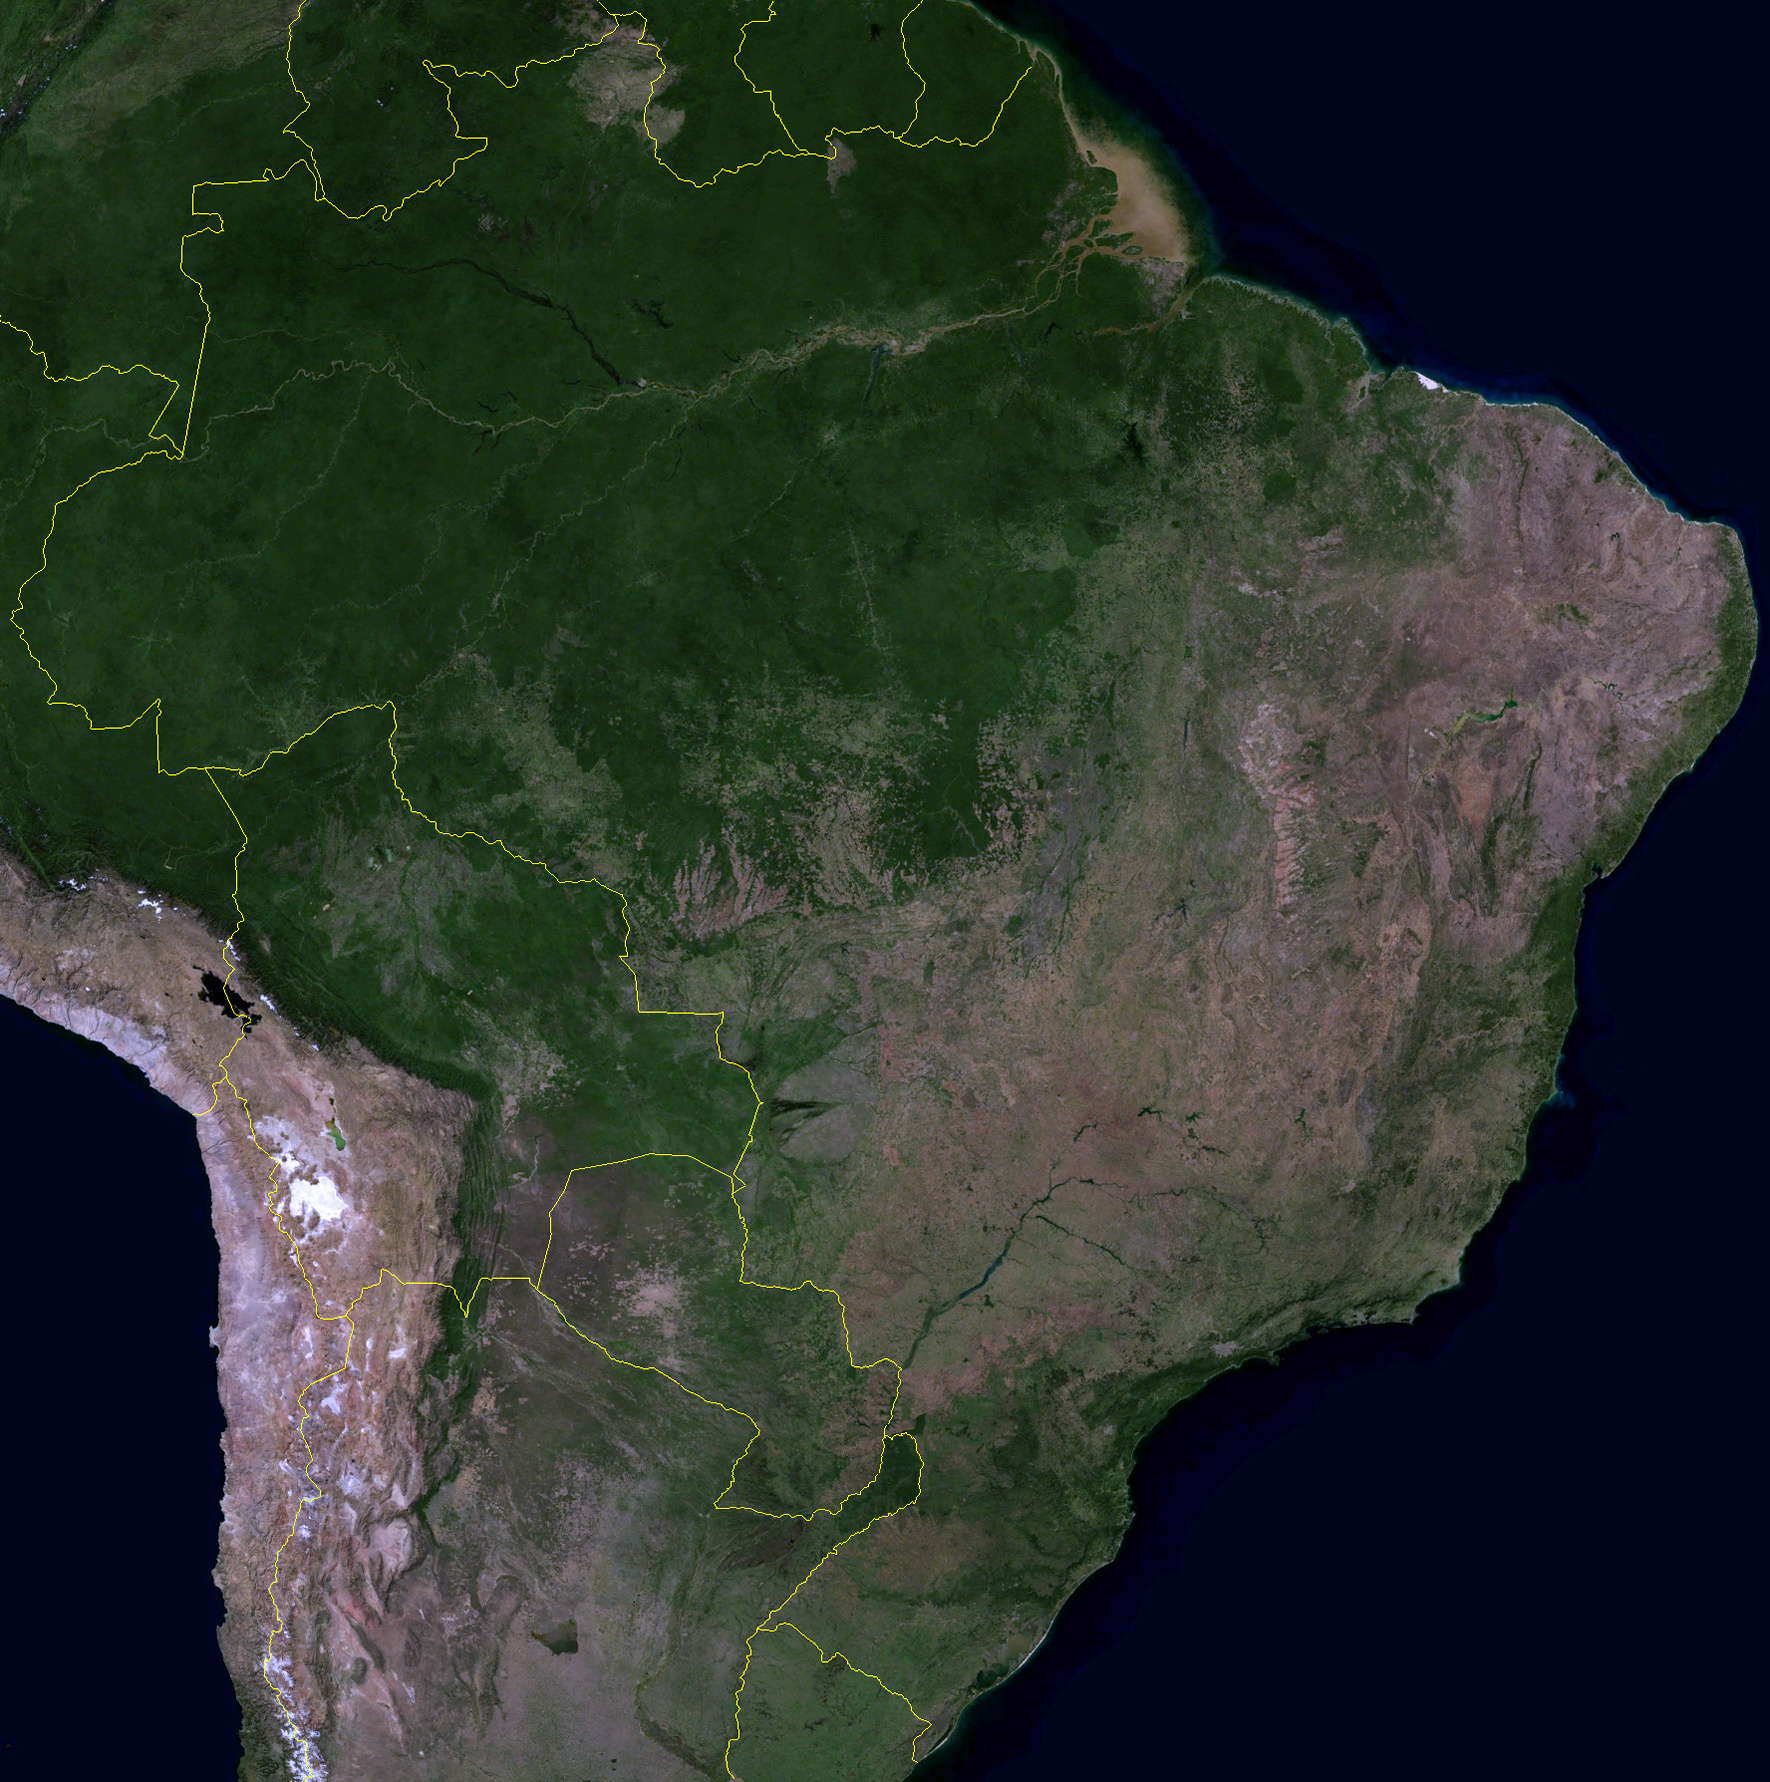 Brazil Map And Satellite Image Brazil Map And Satellite Image - Google earth map via satellite